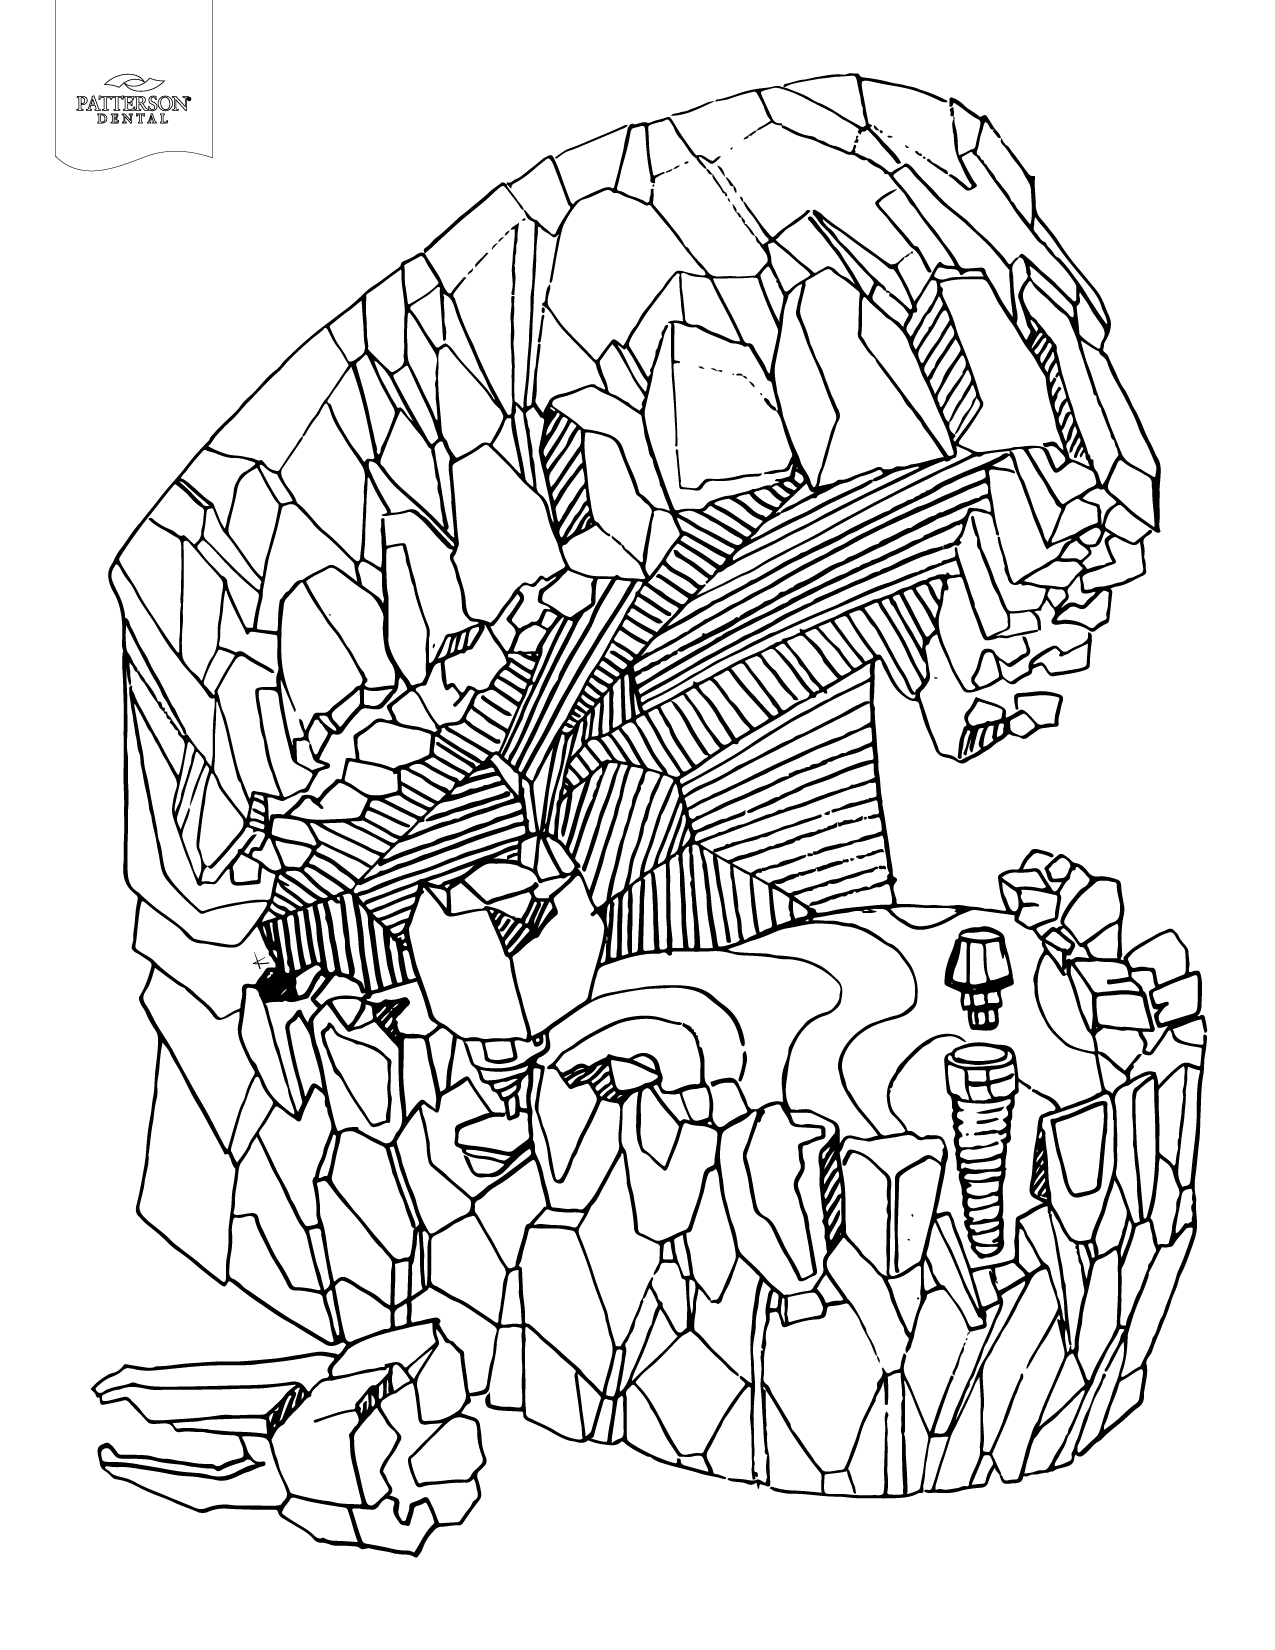 Teeth Coloring Pages Coloring Book Collection – Free Coloring Sheets